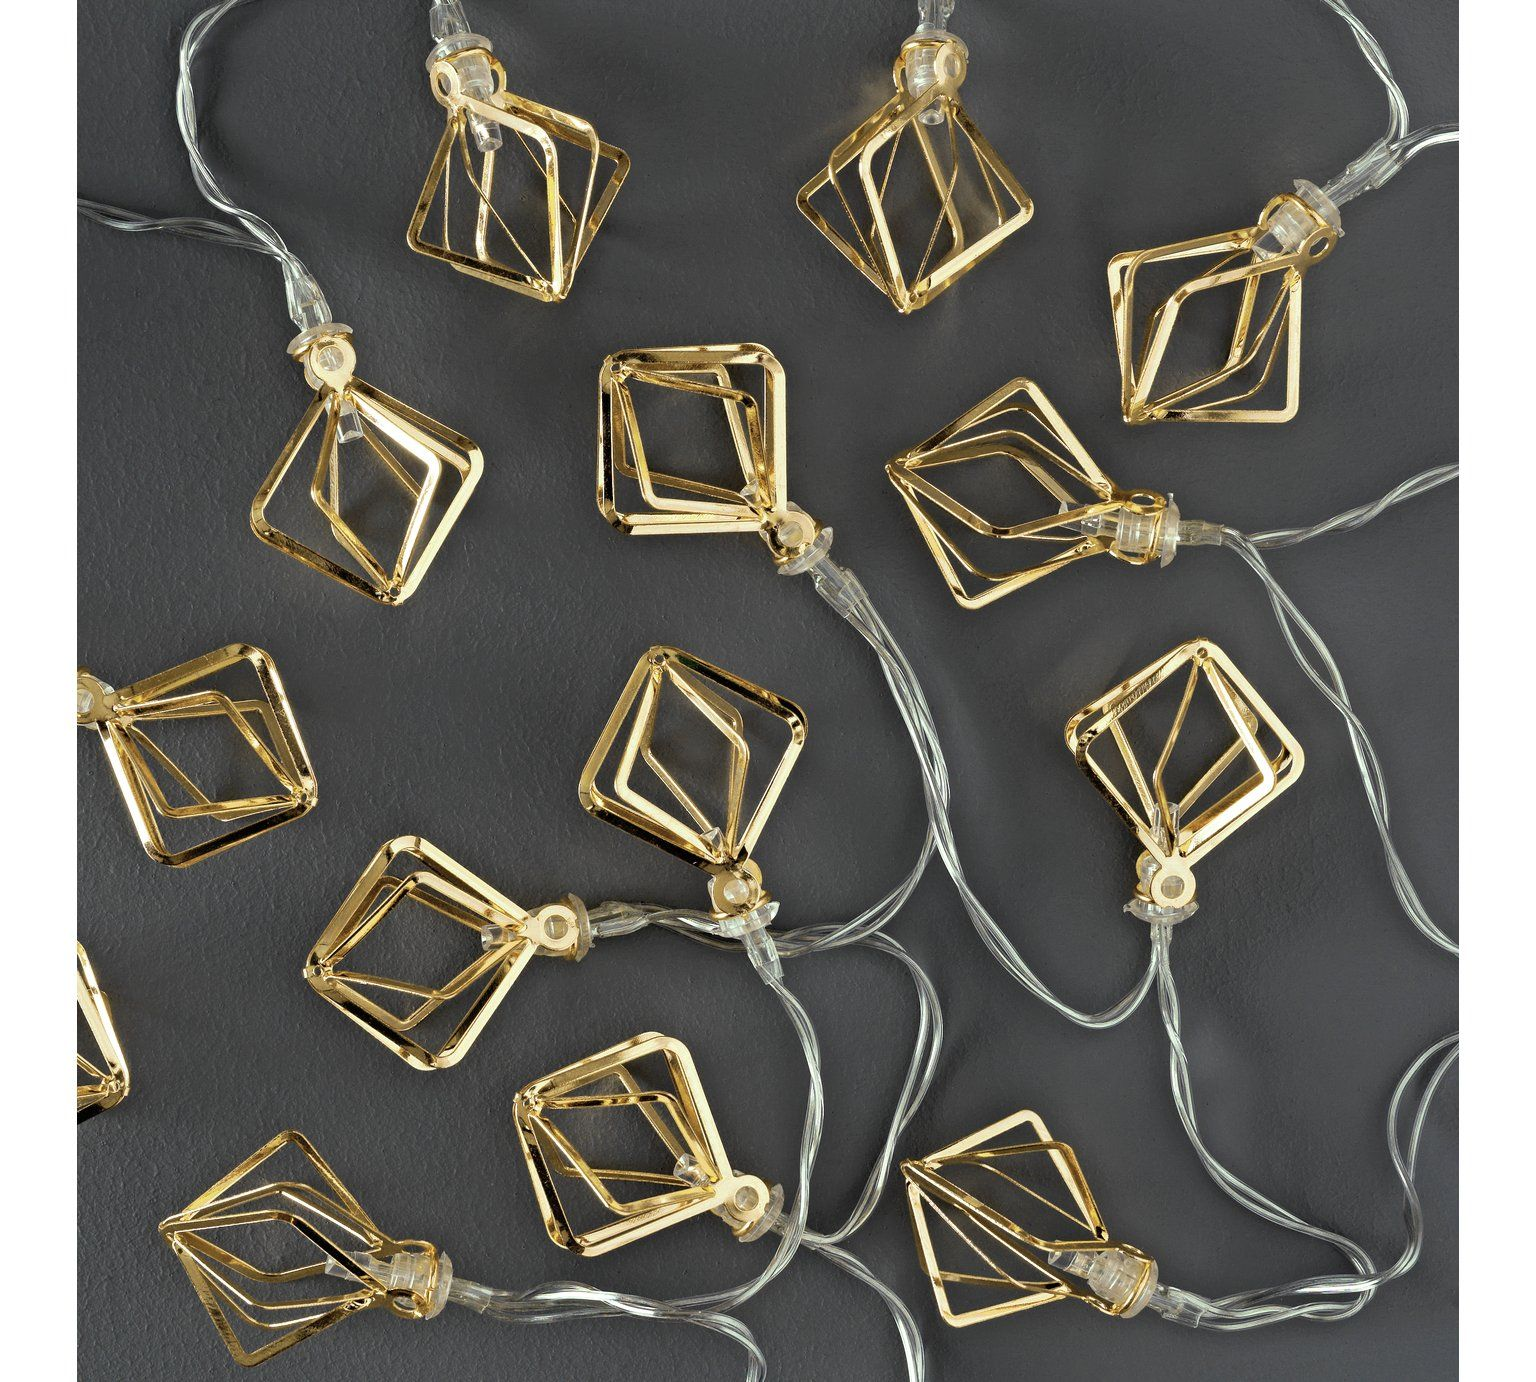 Buy Collection Set of 20 Diamond Cage LED String Lights